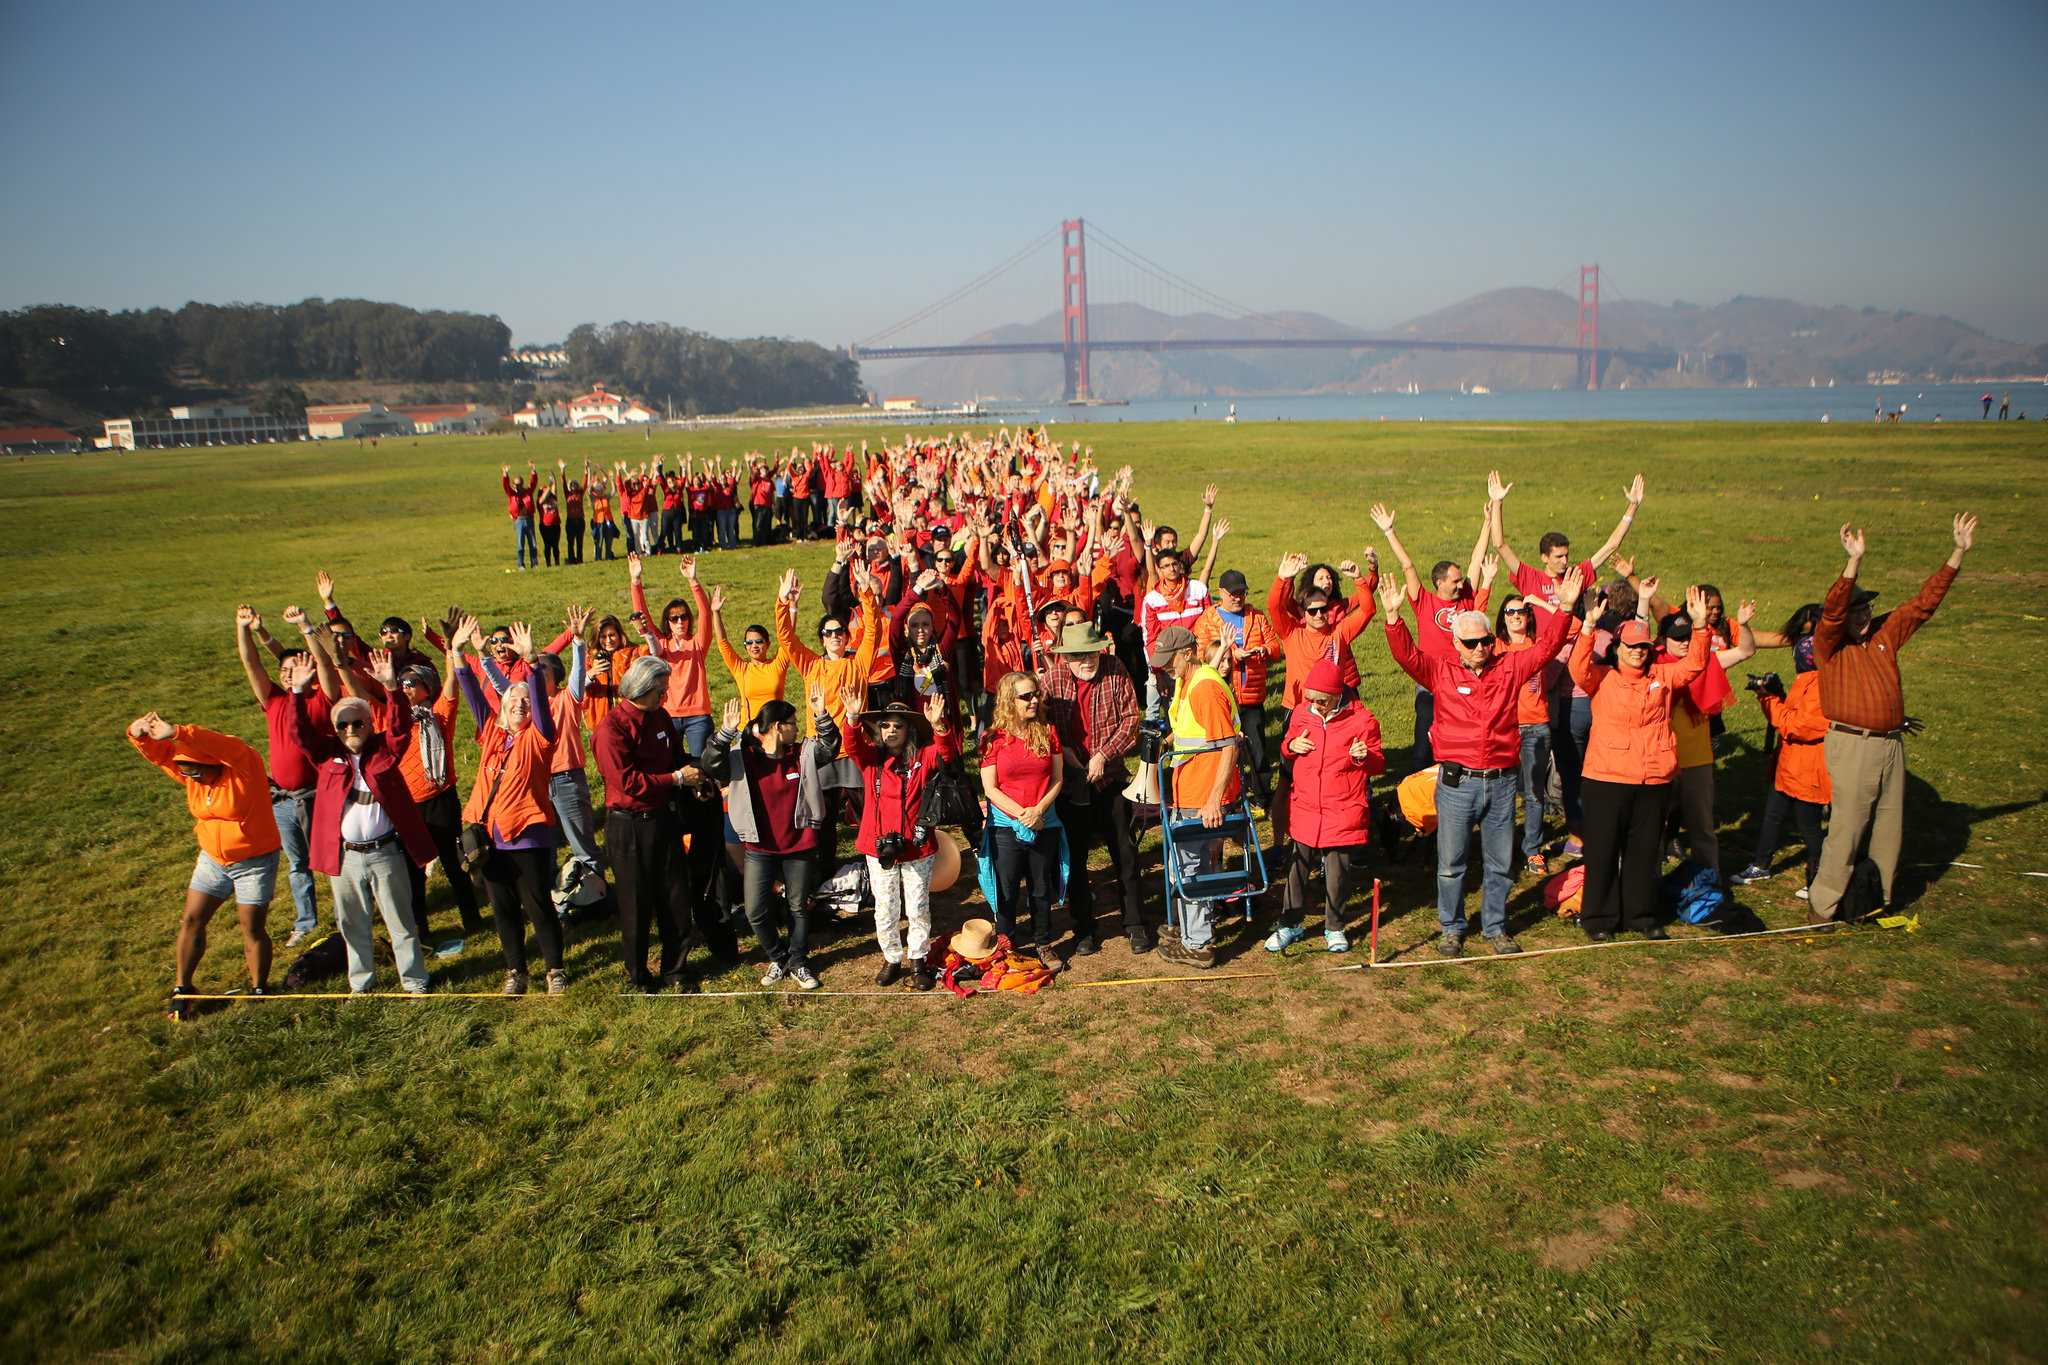 Participants form the figure 1 to celebrate the 100th anniversary of the National Park Service at Crissy Field in San Francisco November 14, 2015. (Joel Angel Juárez / Xpress)